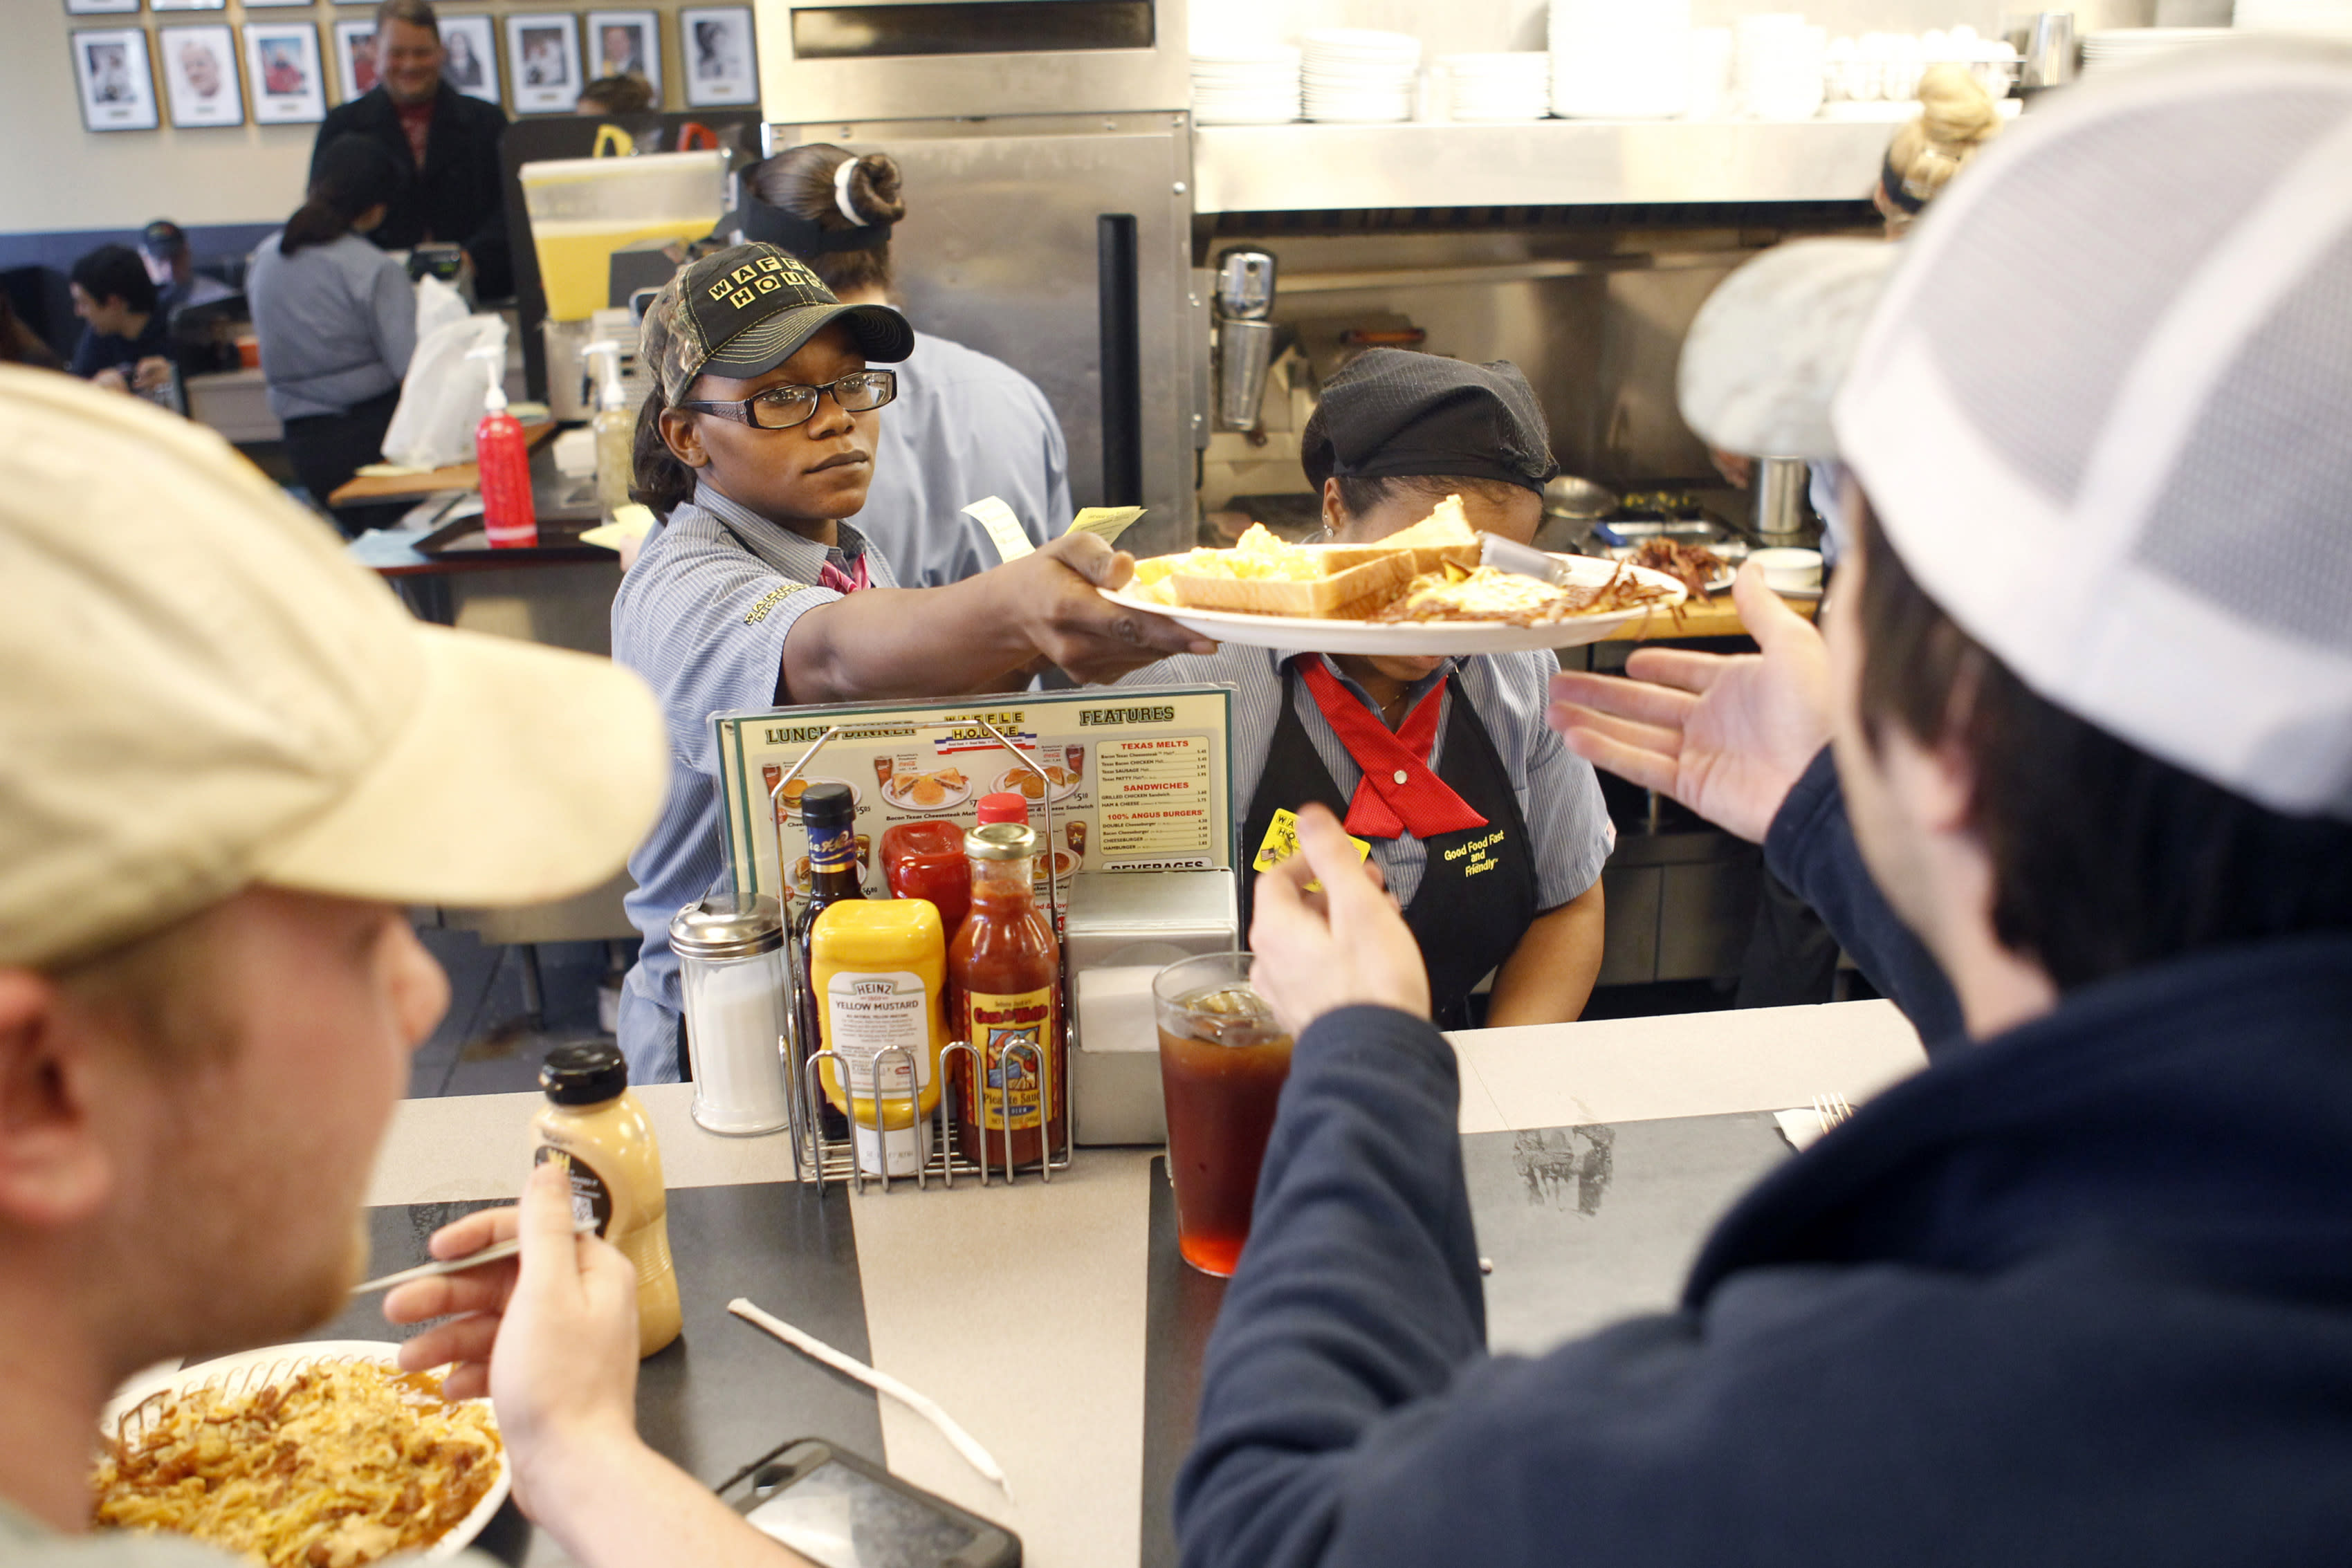 Men and millennials least likely to tip, says new study